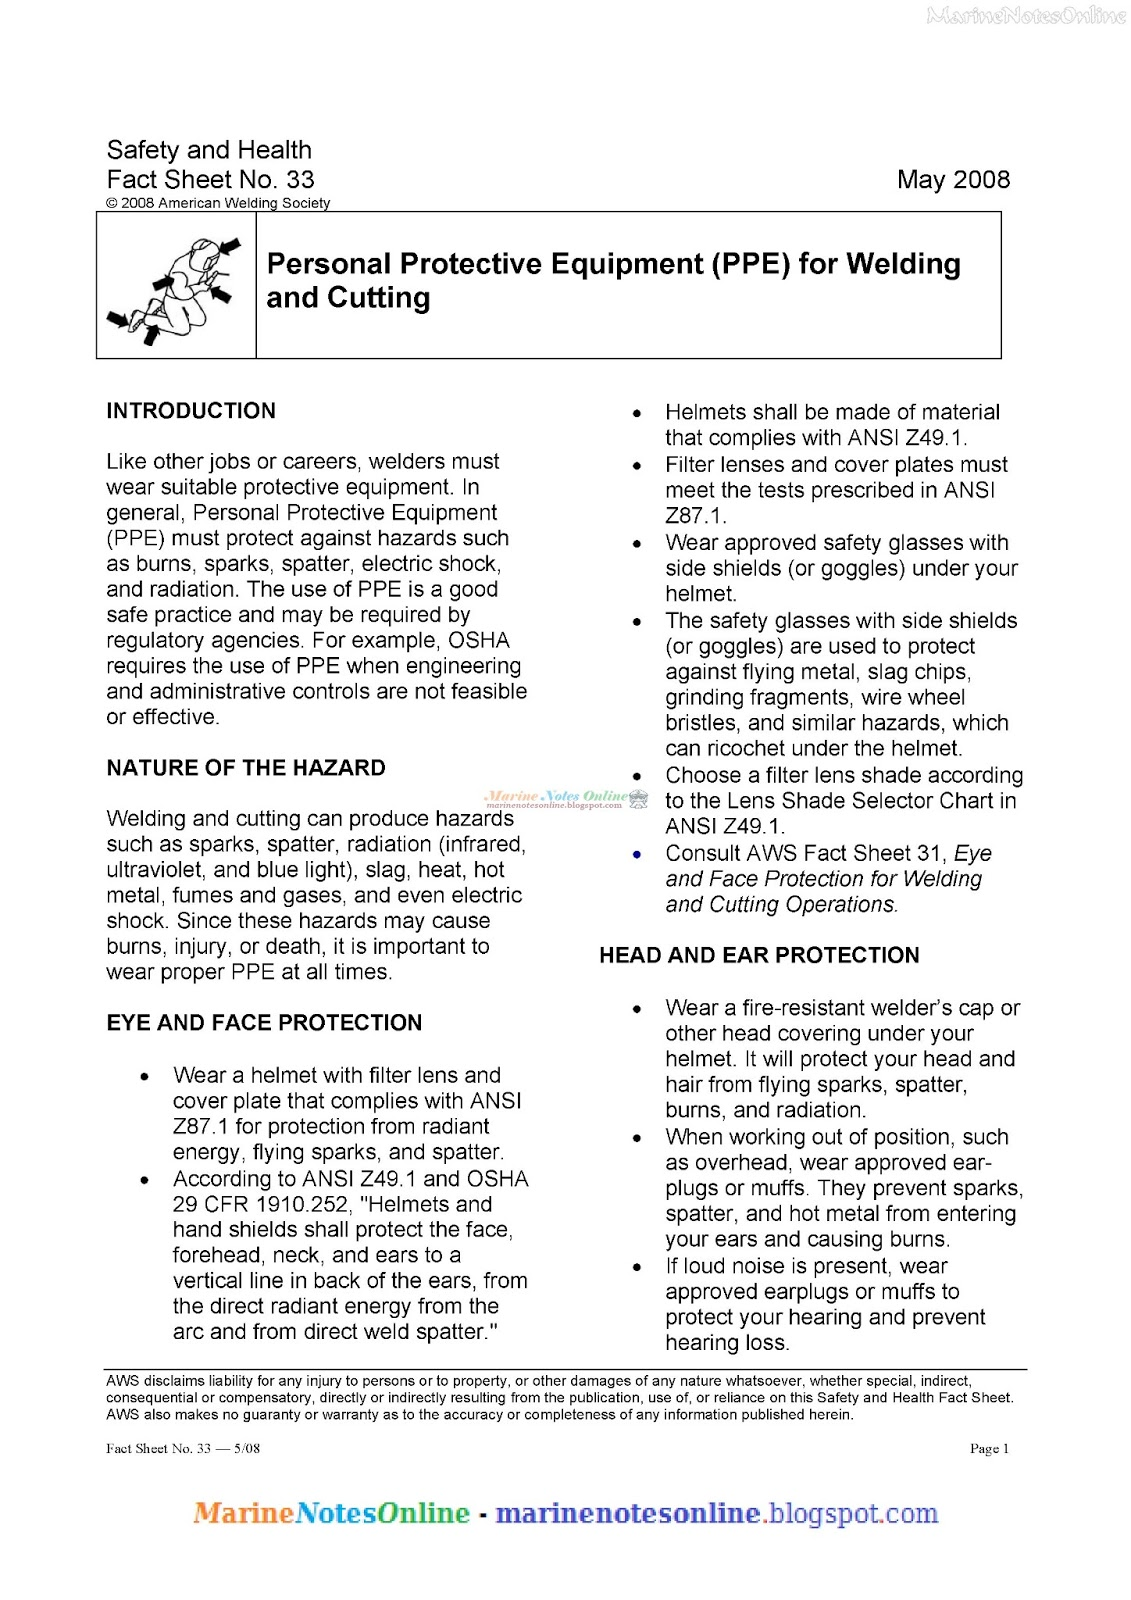 Personal Protective Equipment Ppe For Welding And